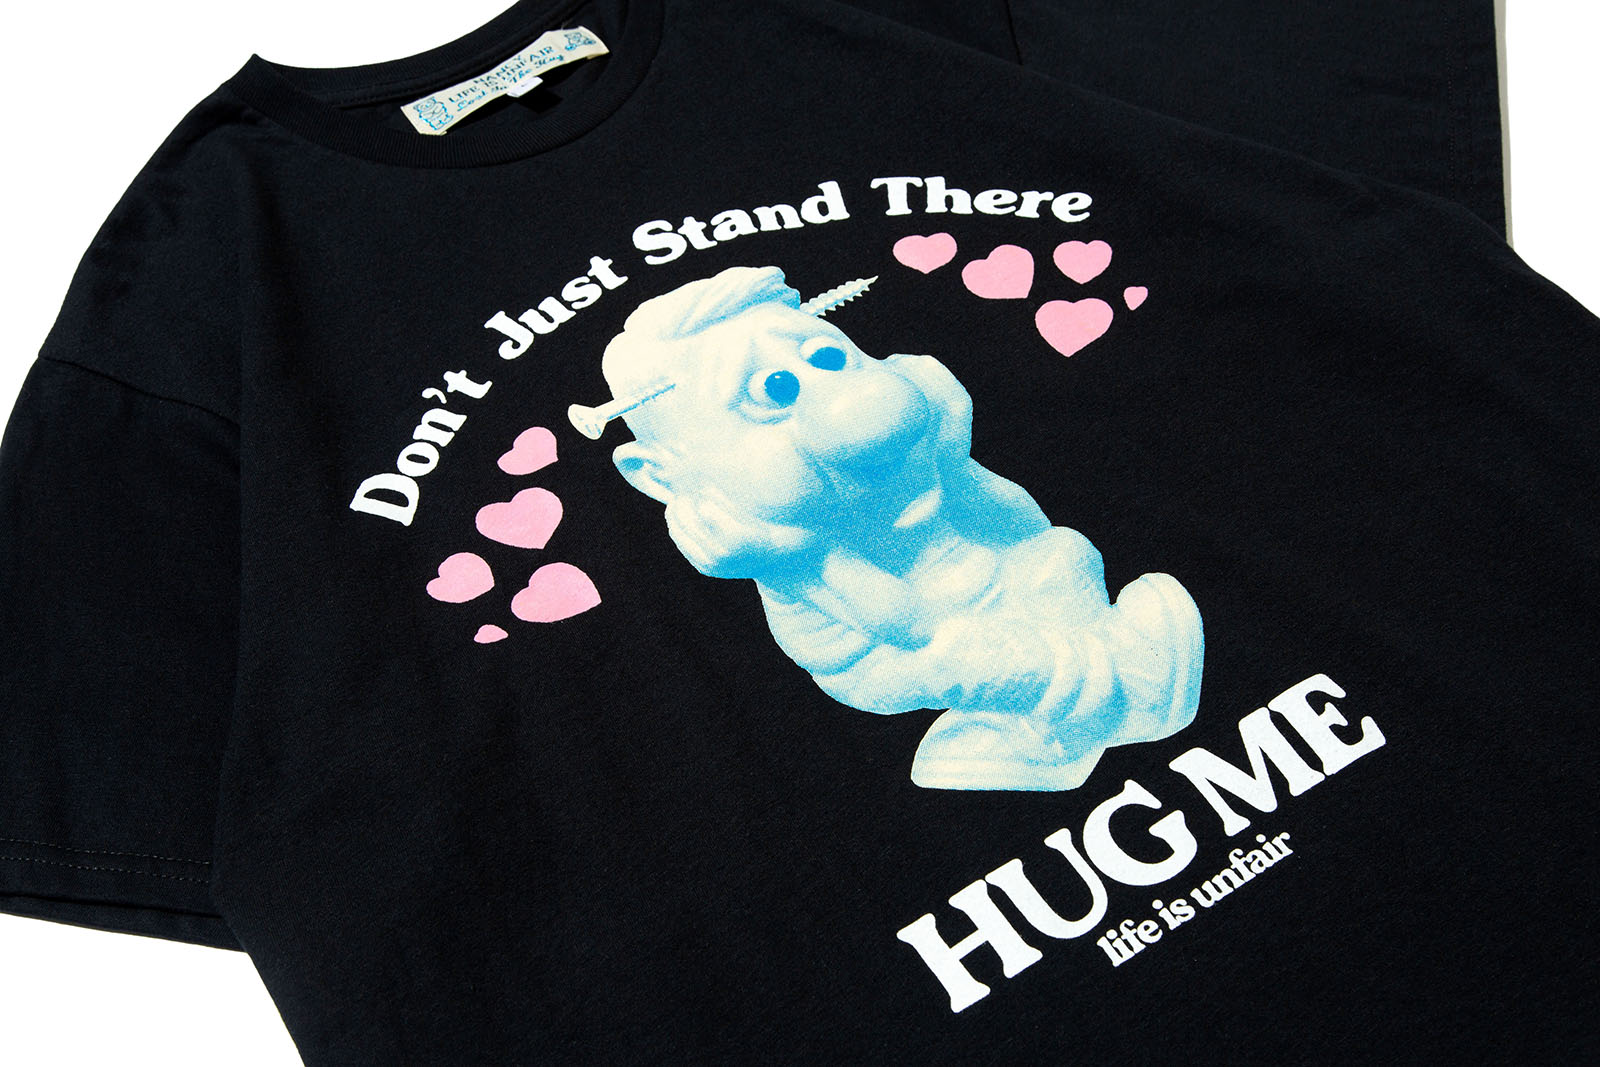 stand-there-tee-black_p1